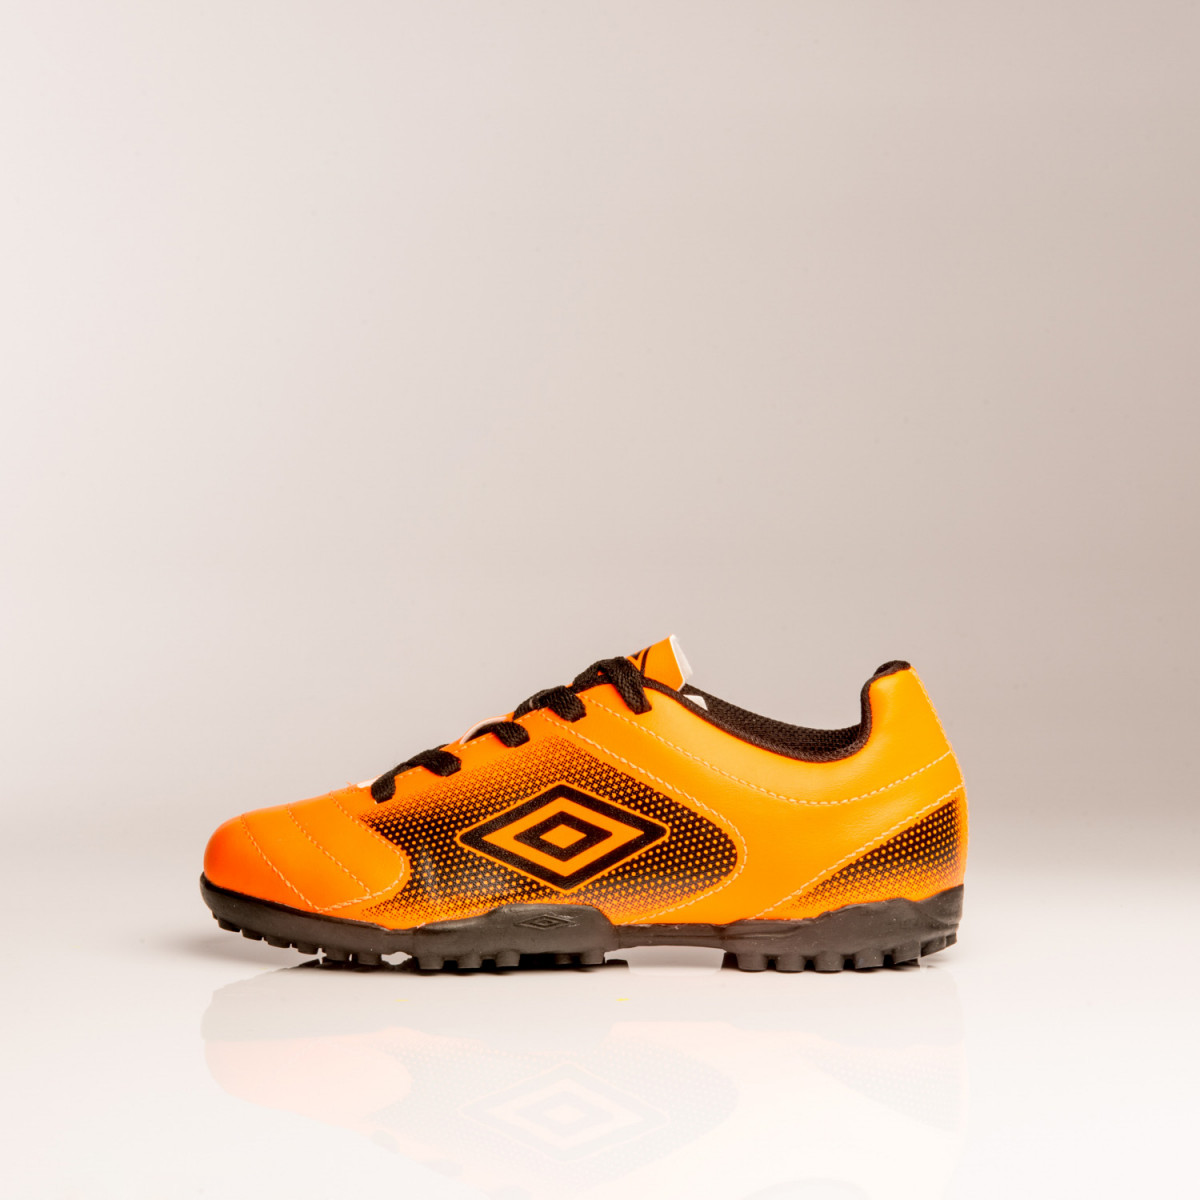 BOTINES UMBRO SOCIETY STRIKER 2013 JR